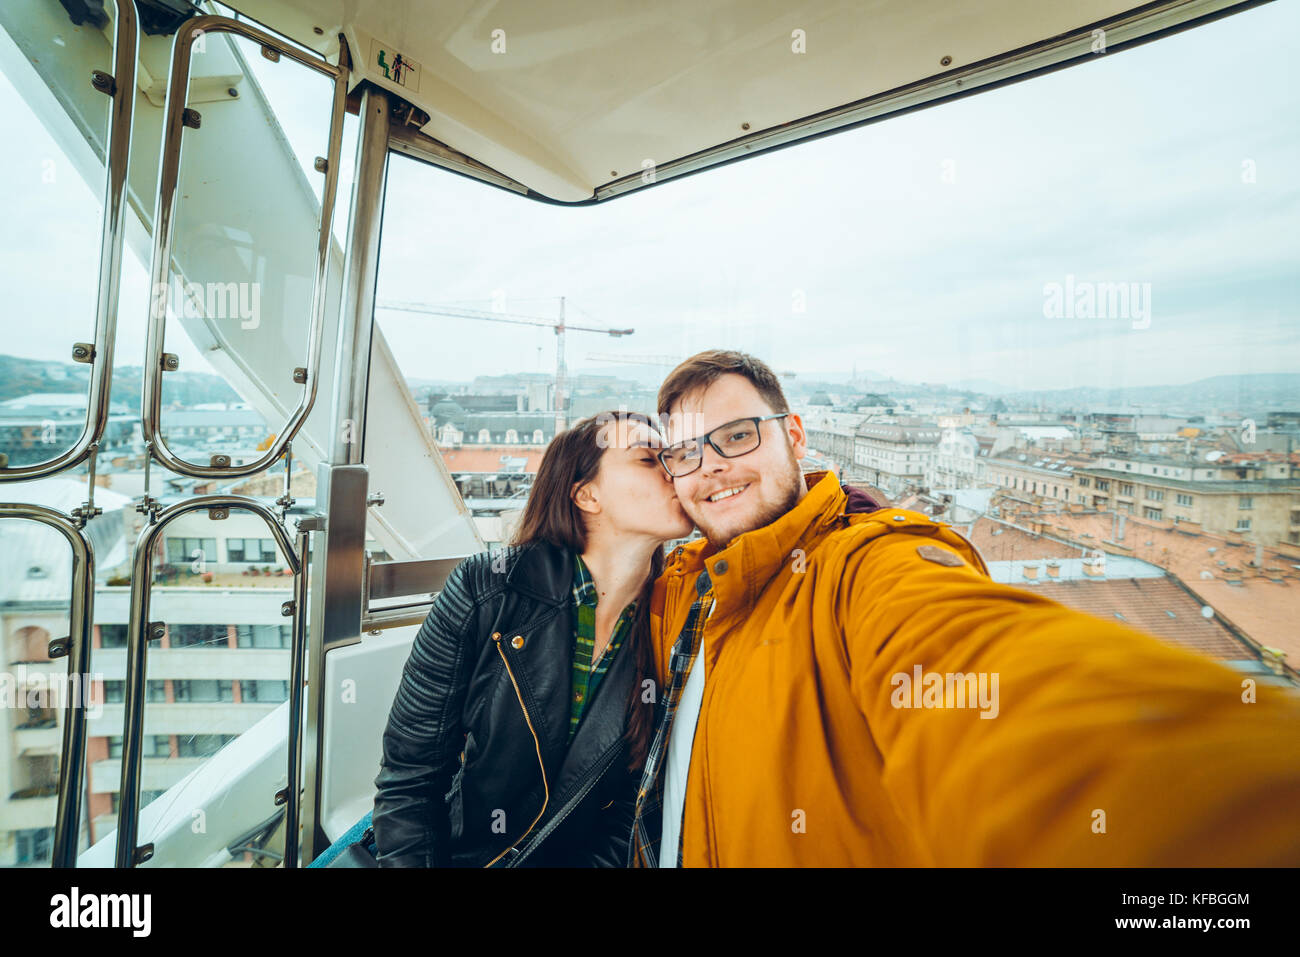 man with woman at ferris wheel taking a selfie Stock Photo